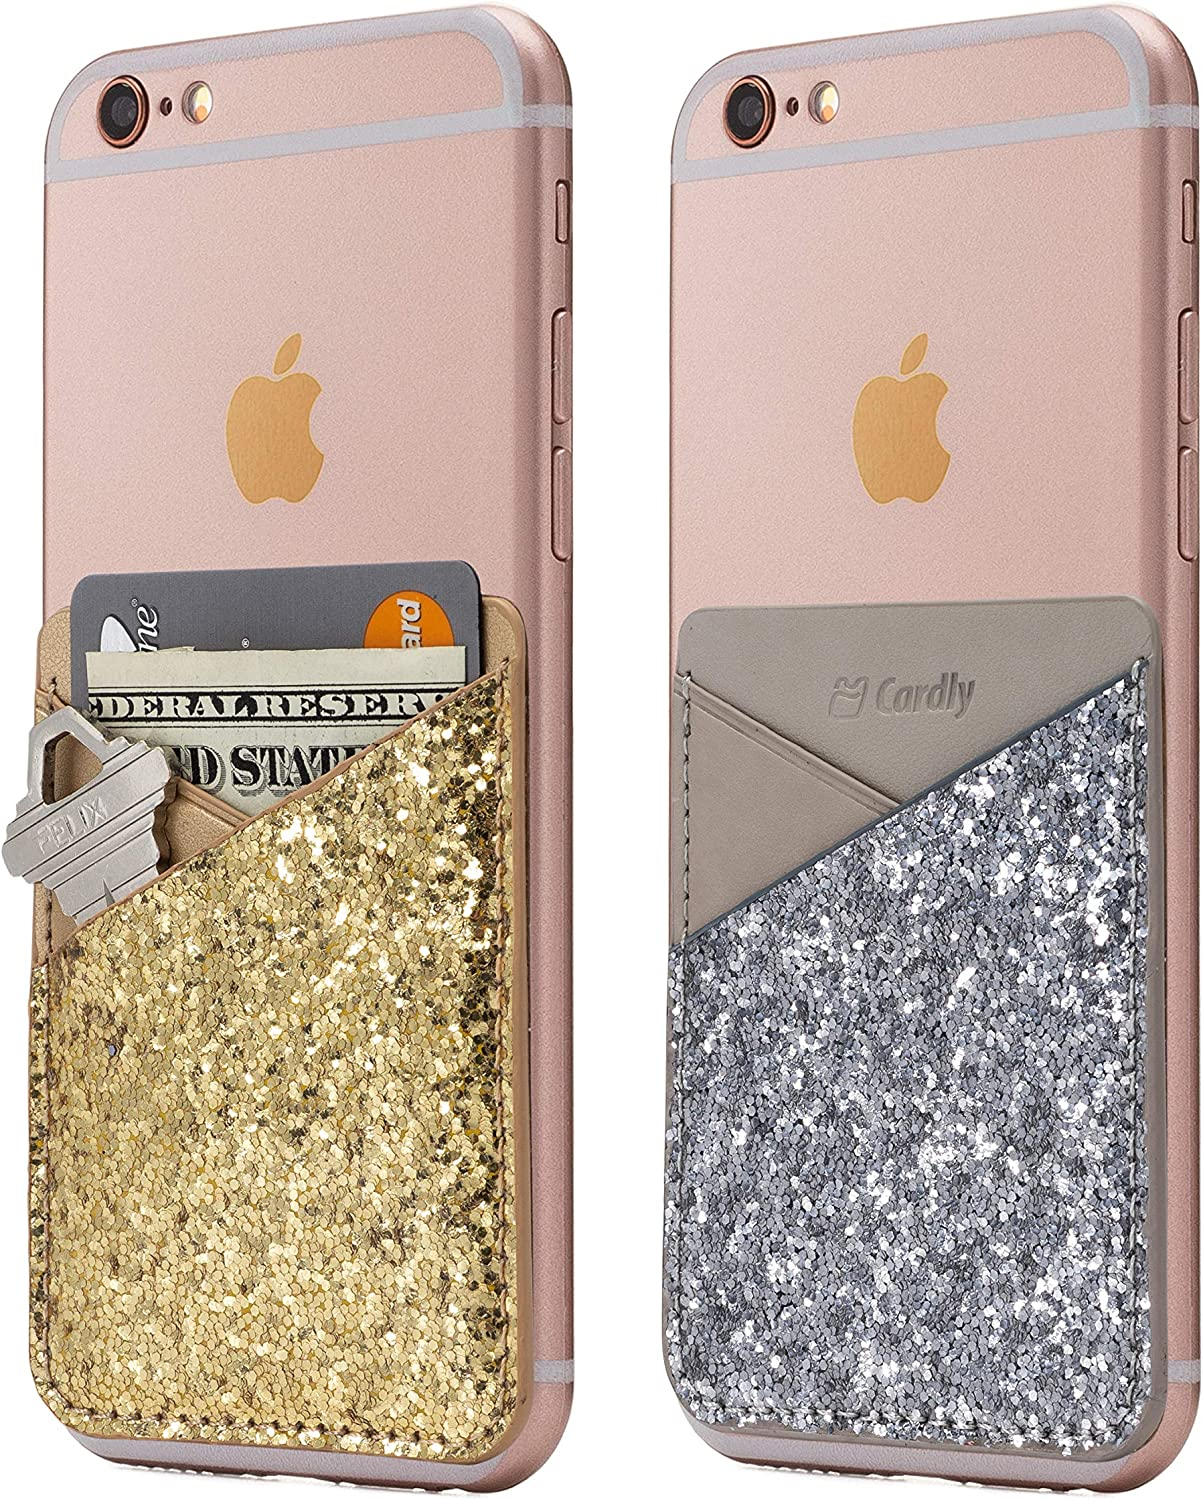 (Two) Cell Phone Stick On Wallet Card Holder Phone Pocket for iPhone, Android and All Smartphones. (Silver and Gold)